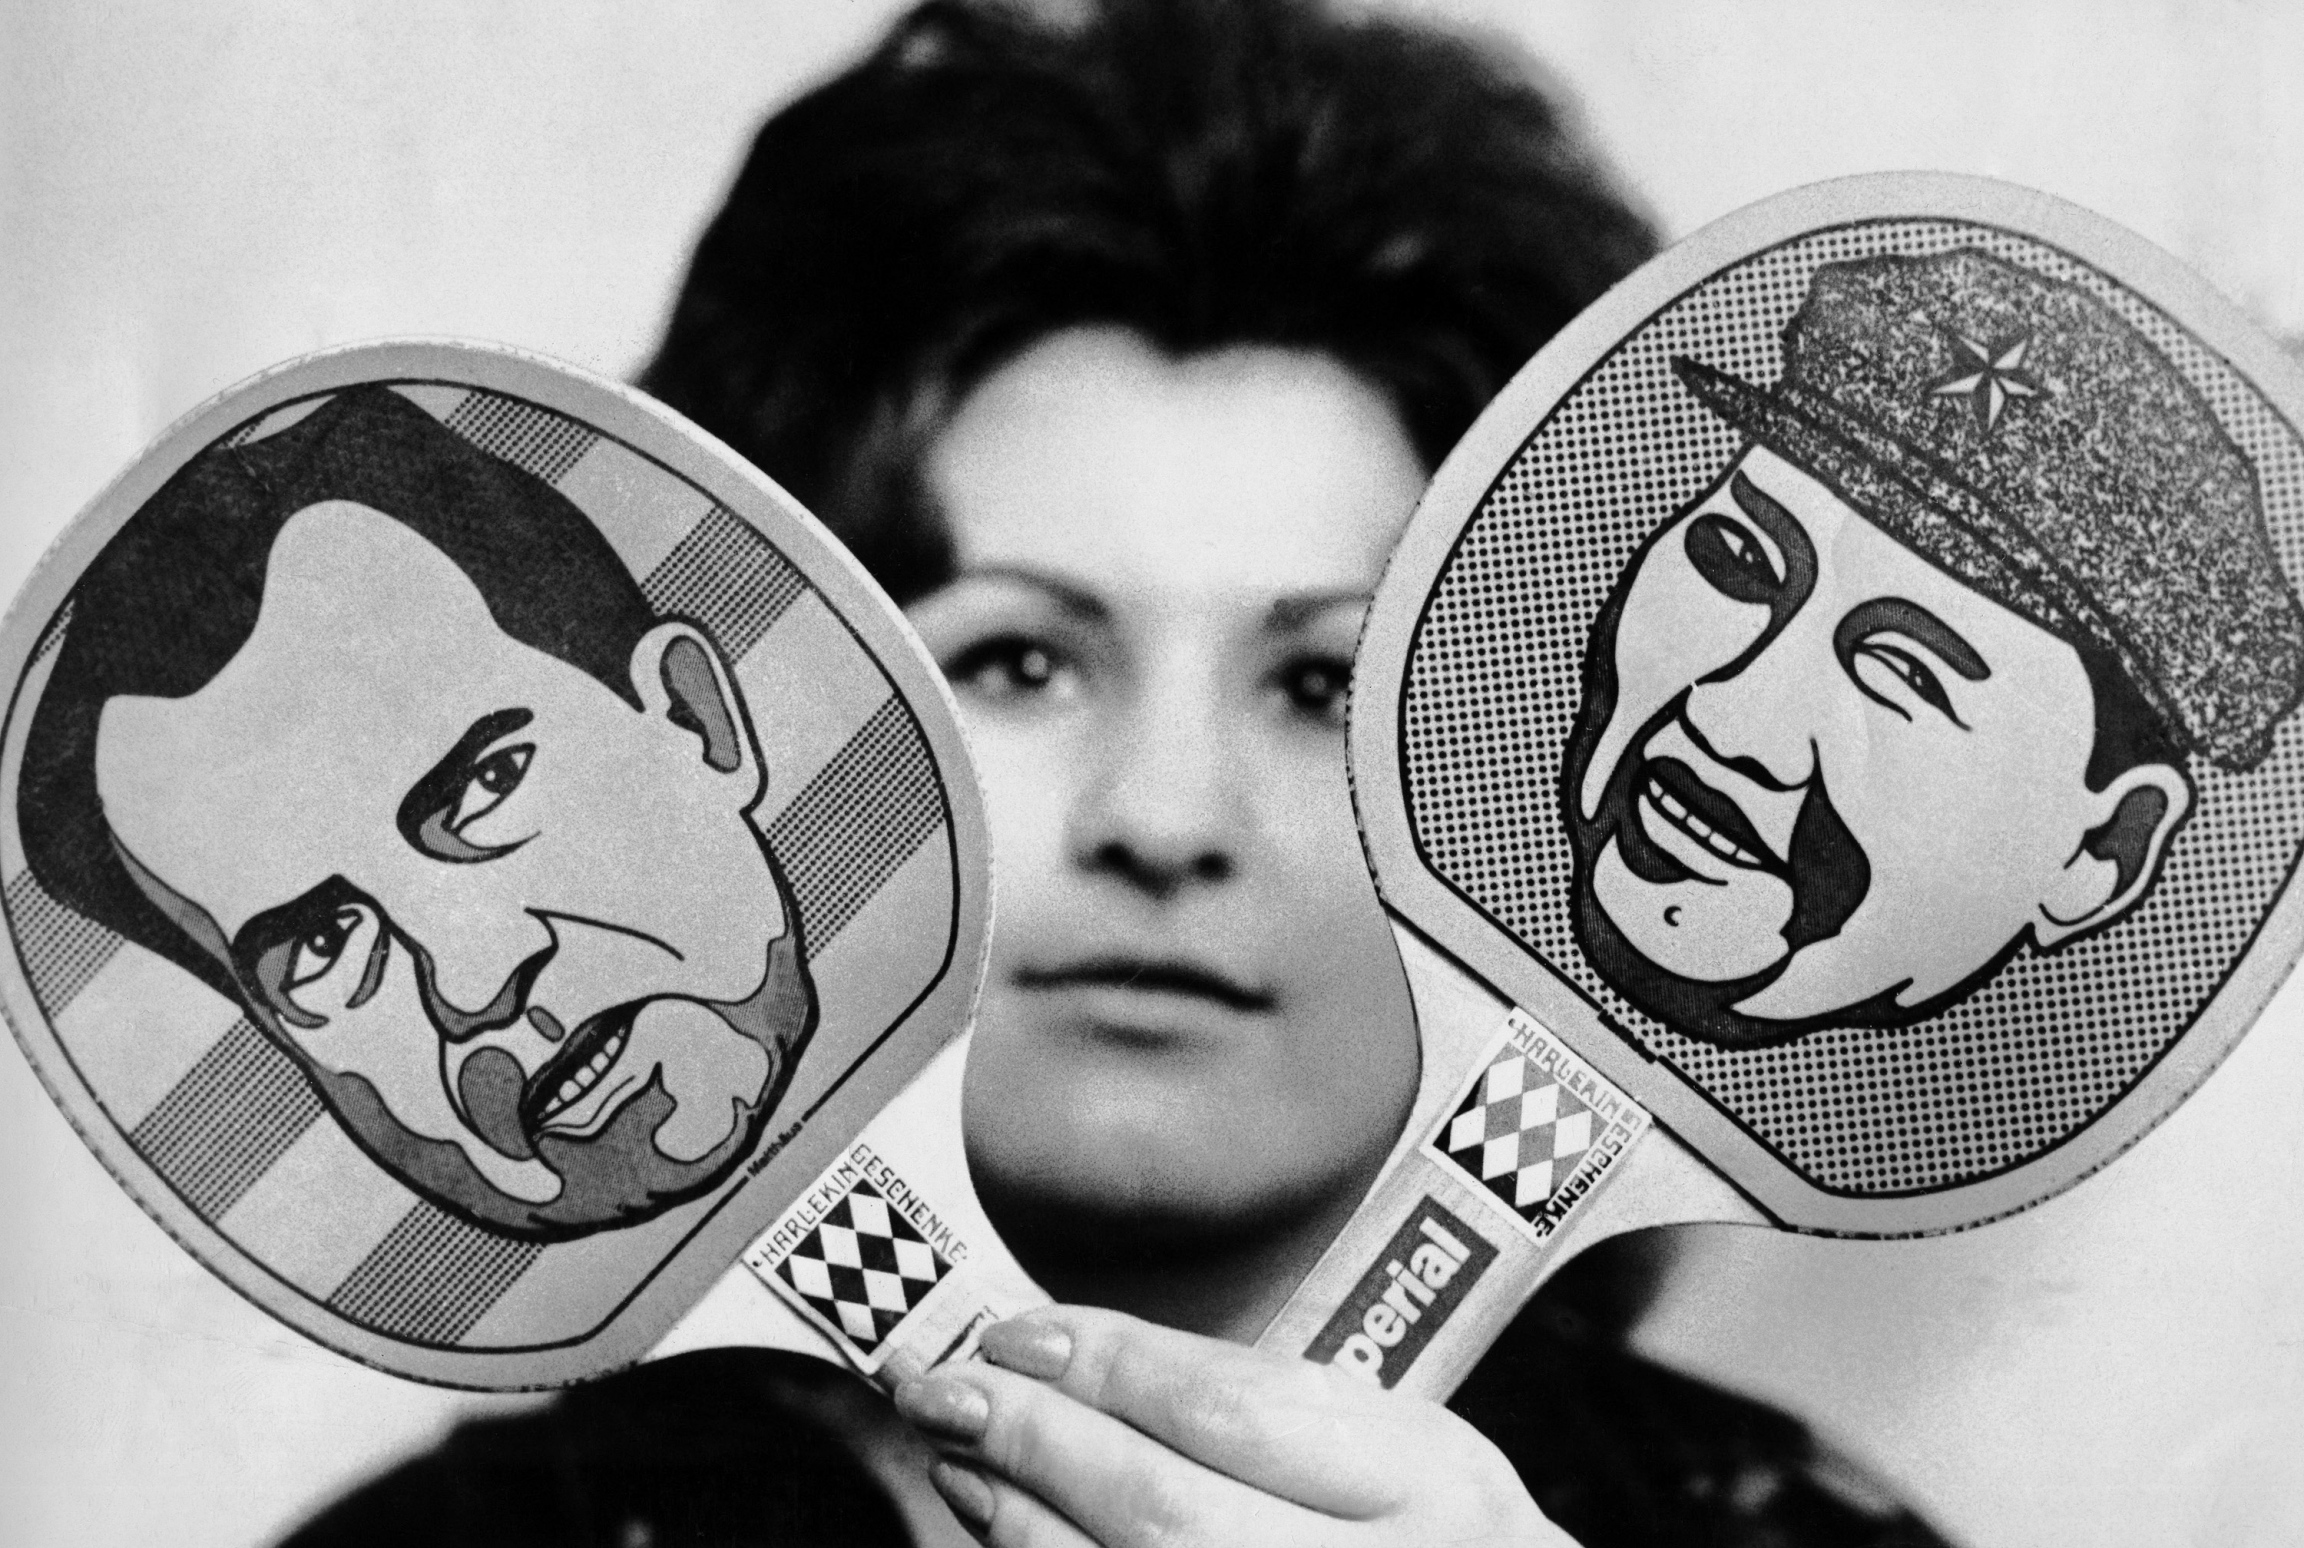 Pingpong paddles features faces of Richard Nixon and Chinese Chairman Mao Tse-tung